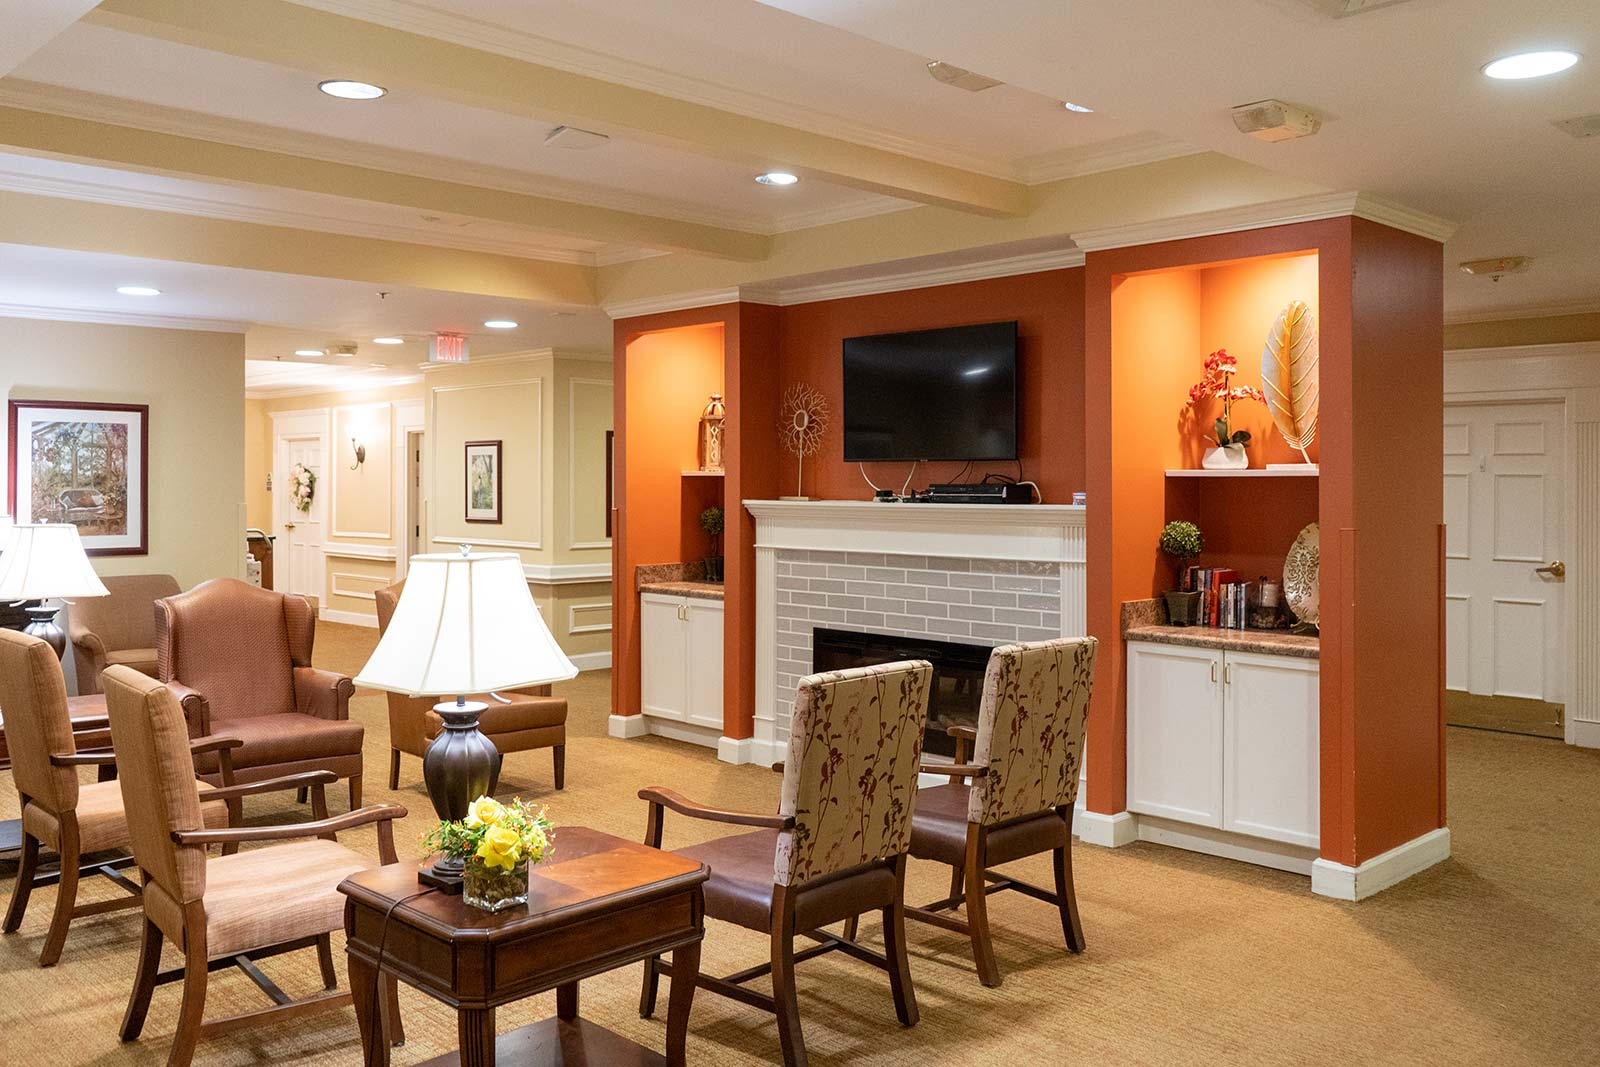 Social gathering area at The Colonnade at Northdale assisted living and memory care community in Tampa, FL